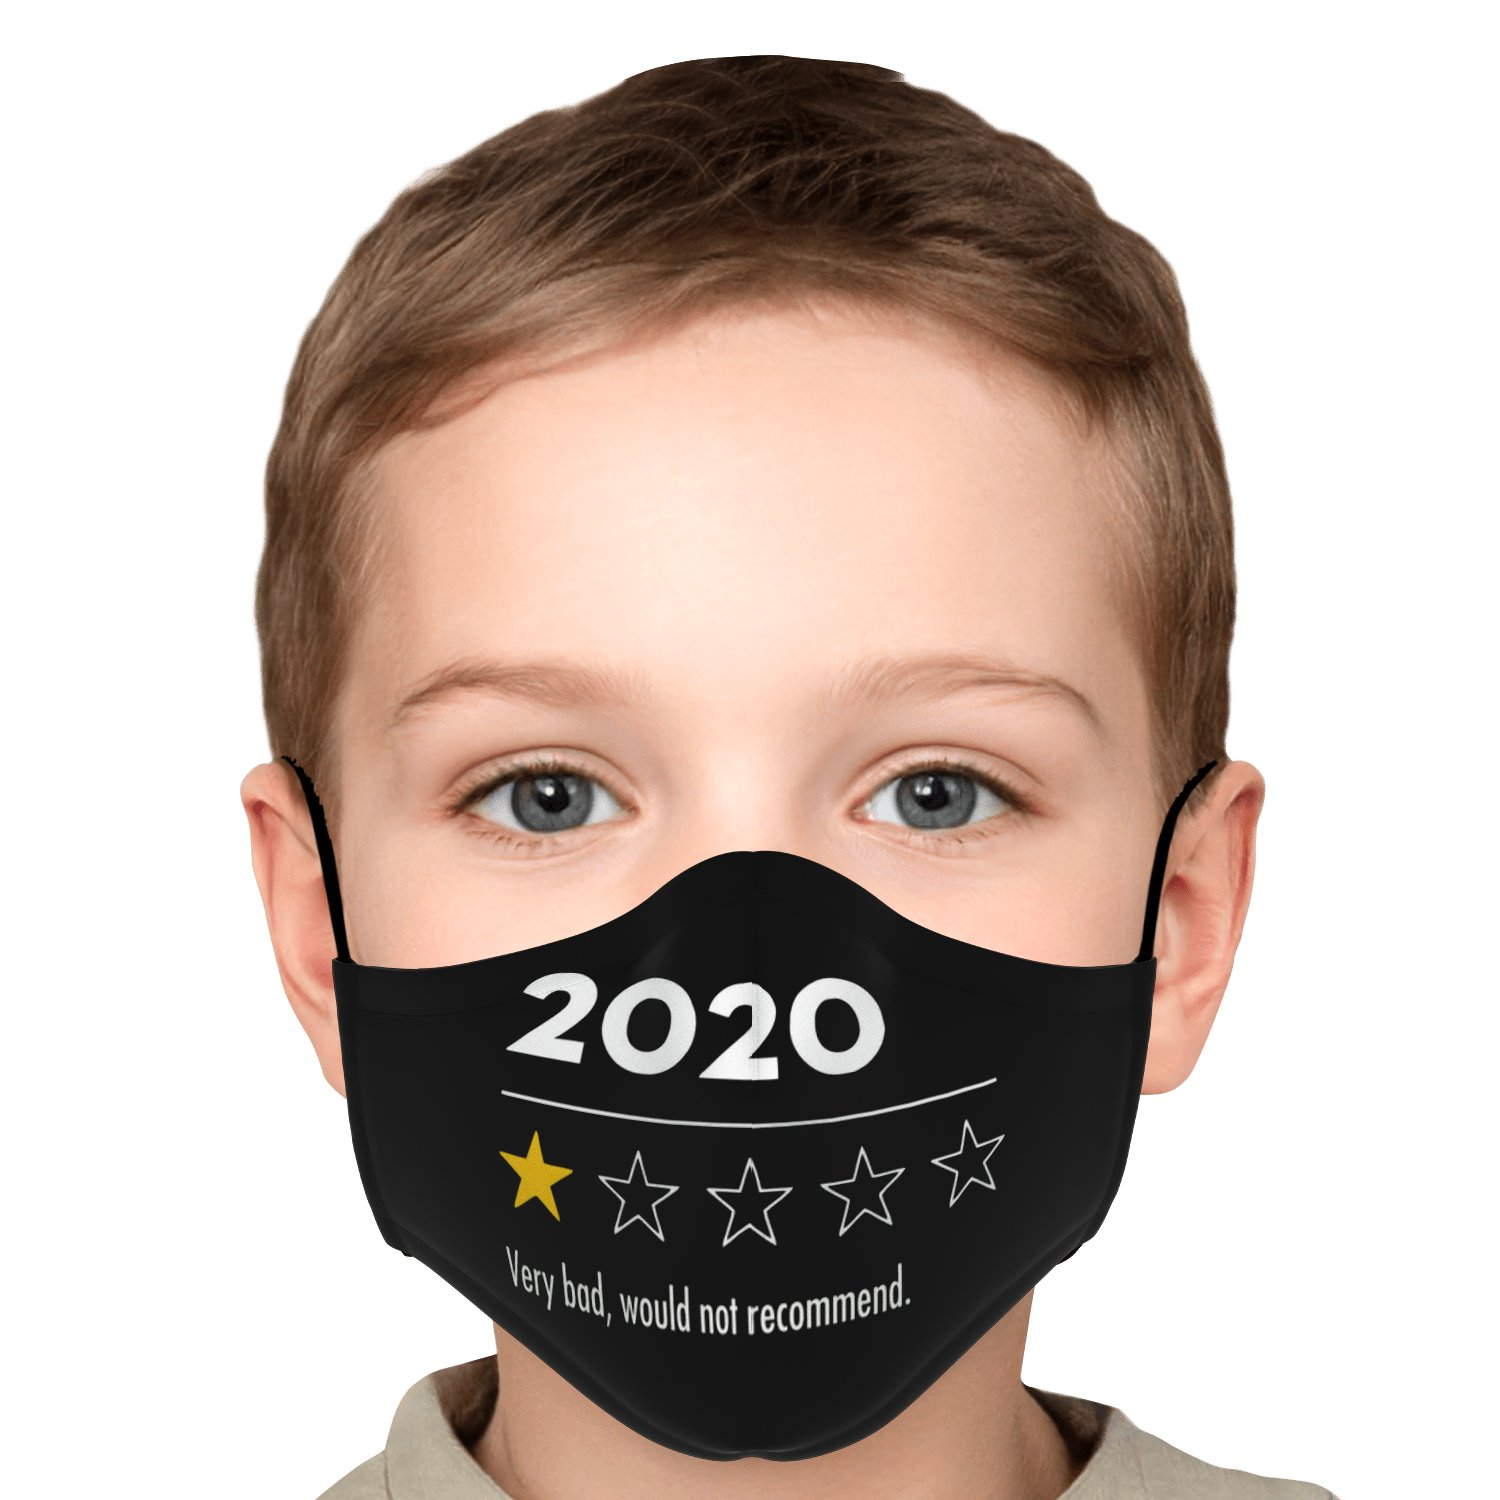 Very Bad Would Not Recommend 2020 Funny Review Face Mask 6